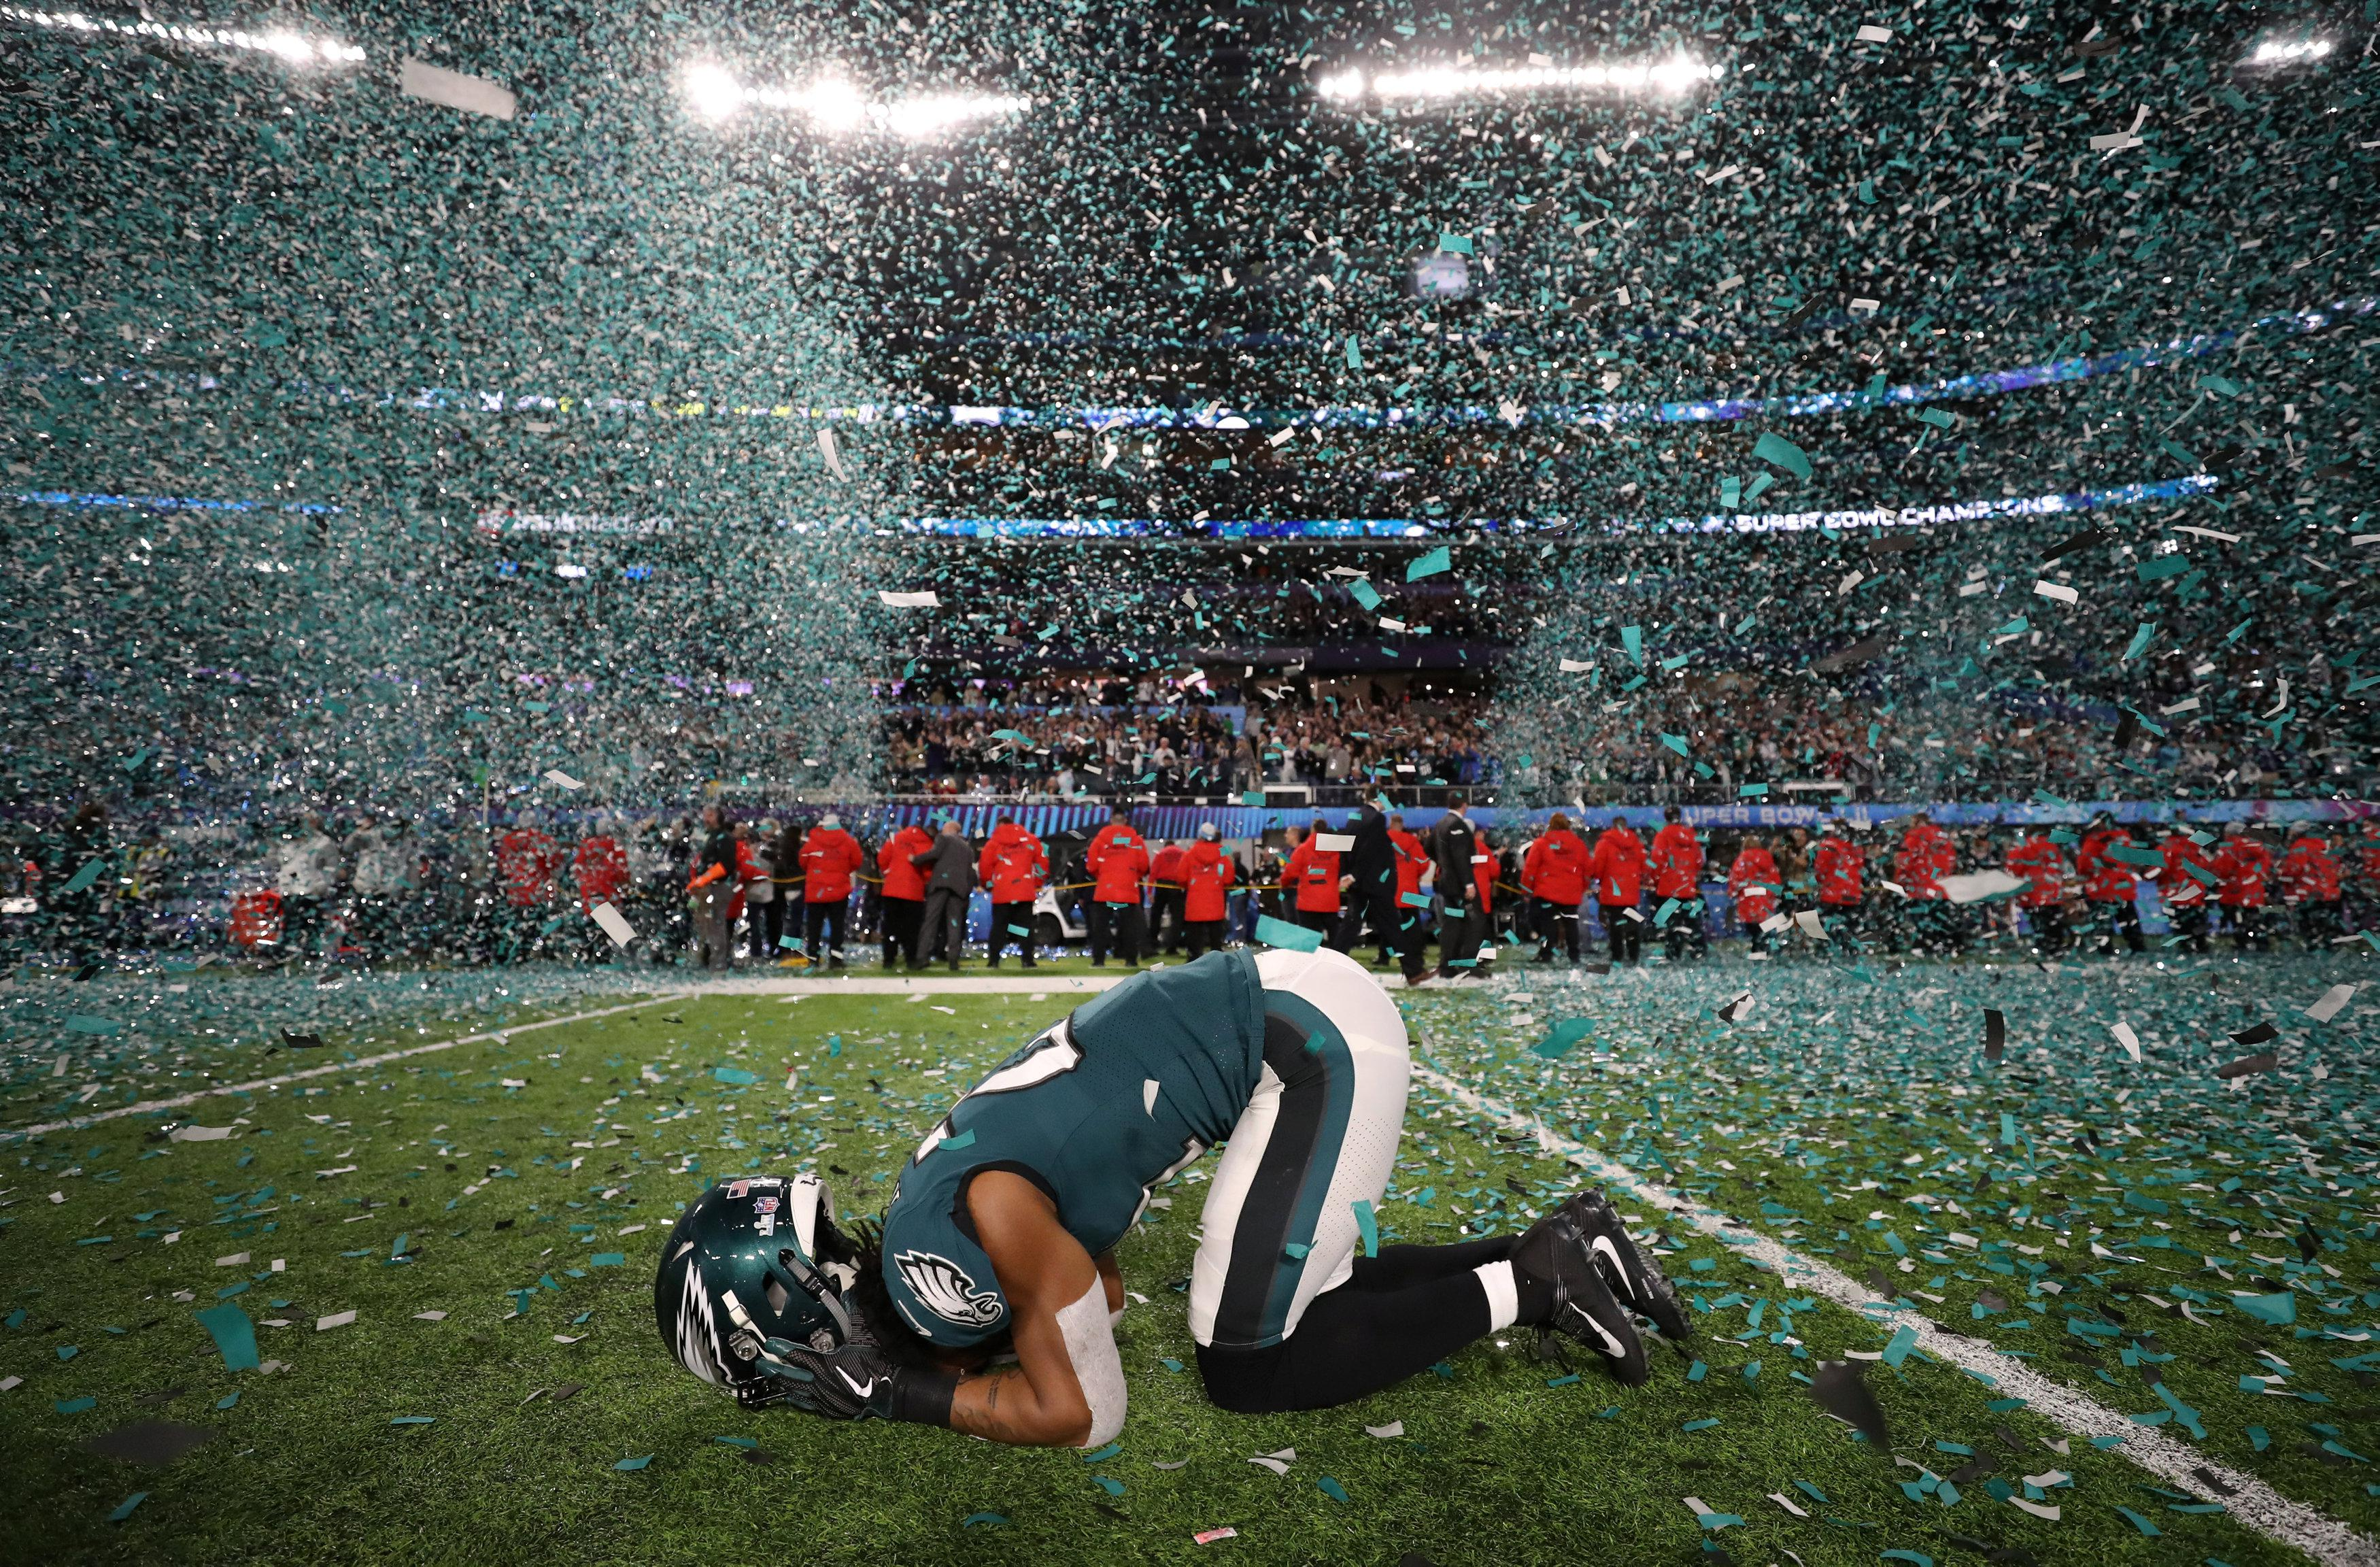 Eagles cornerback Patrick Robinson is overcome with emotion as he savours the Super Bowl win